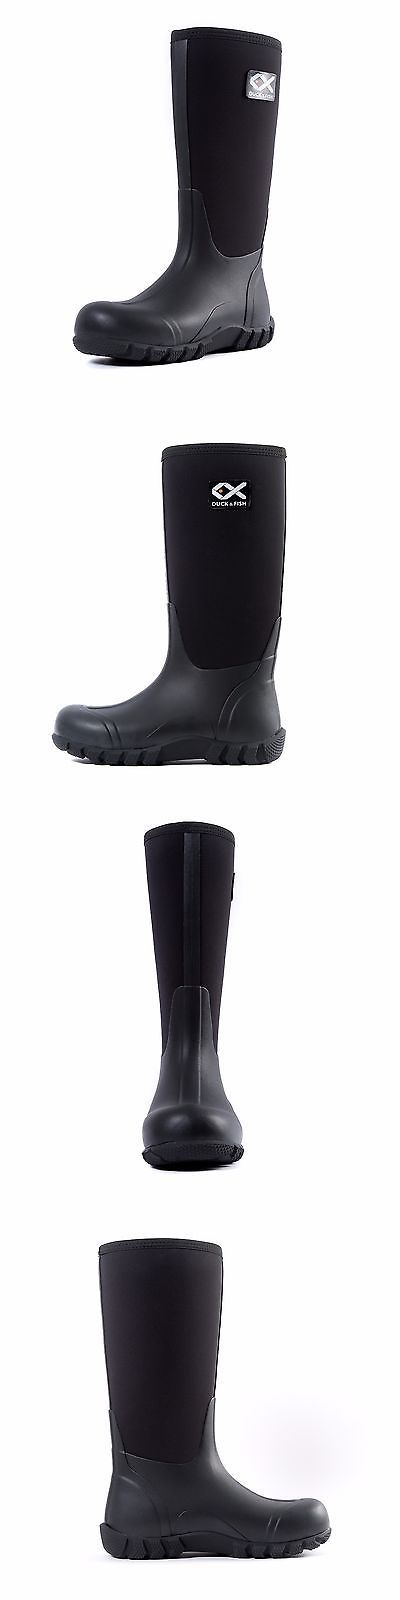 Boots and Shoes 179980: Duck And Fish Buck Man 16 Black Fishing Hunting Neoprene Rubber Farm Knee Boot -> BUY IT NOW ONLY: $49.9 on eBay!